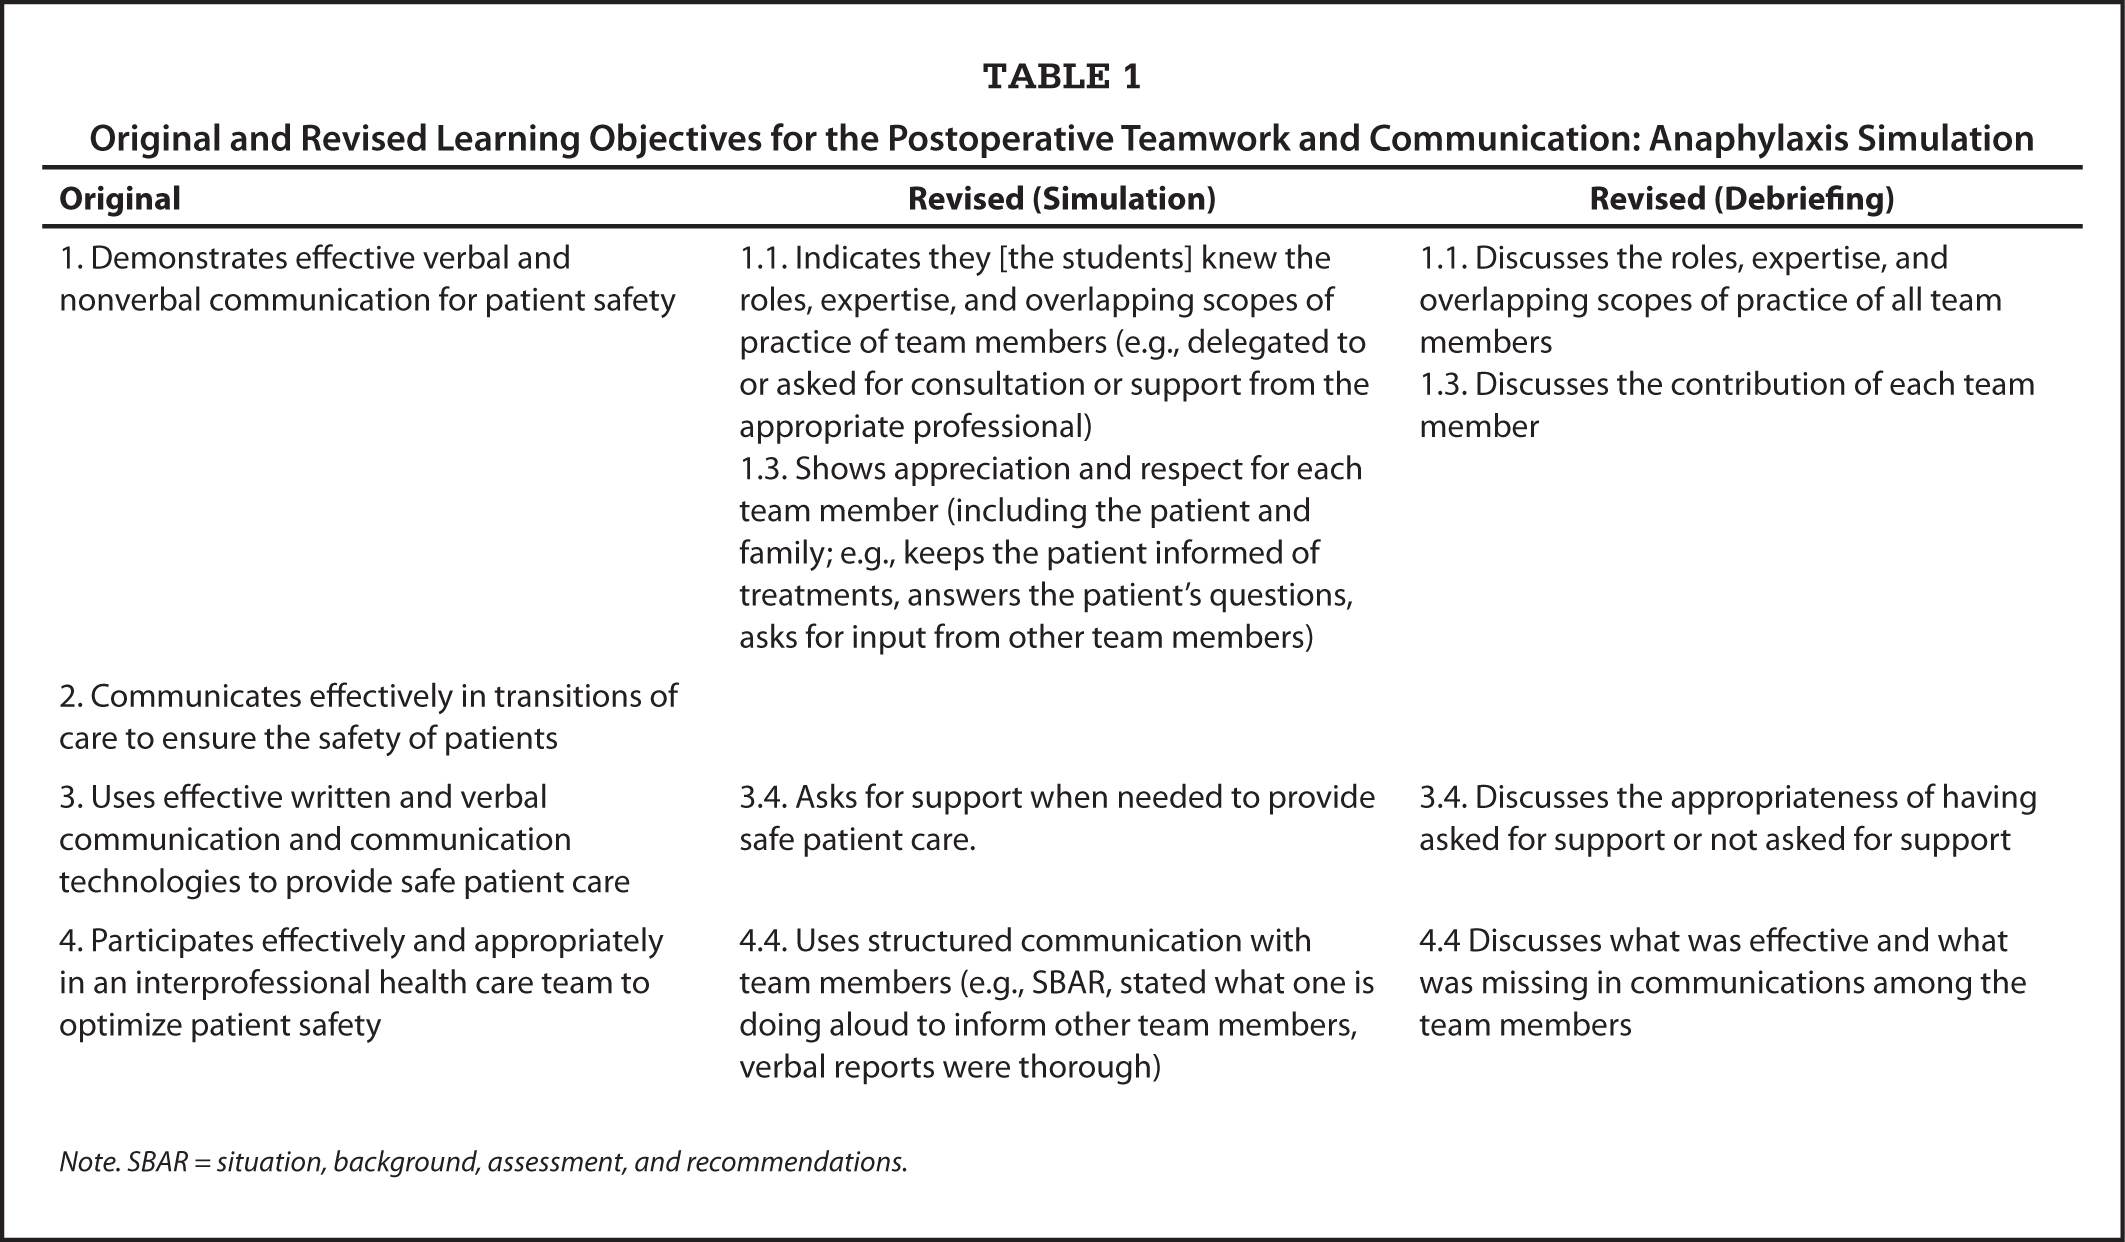 Original and Revised Learning Objectives for the Postoperative Teamwork and Communication: Anaphylaxis Simulation